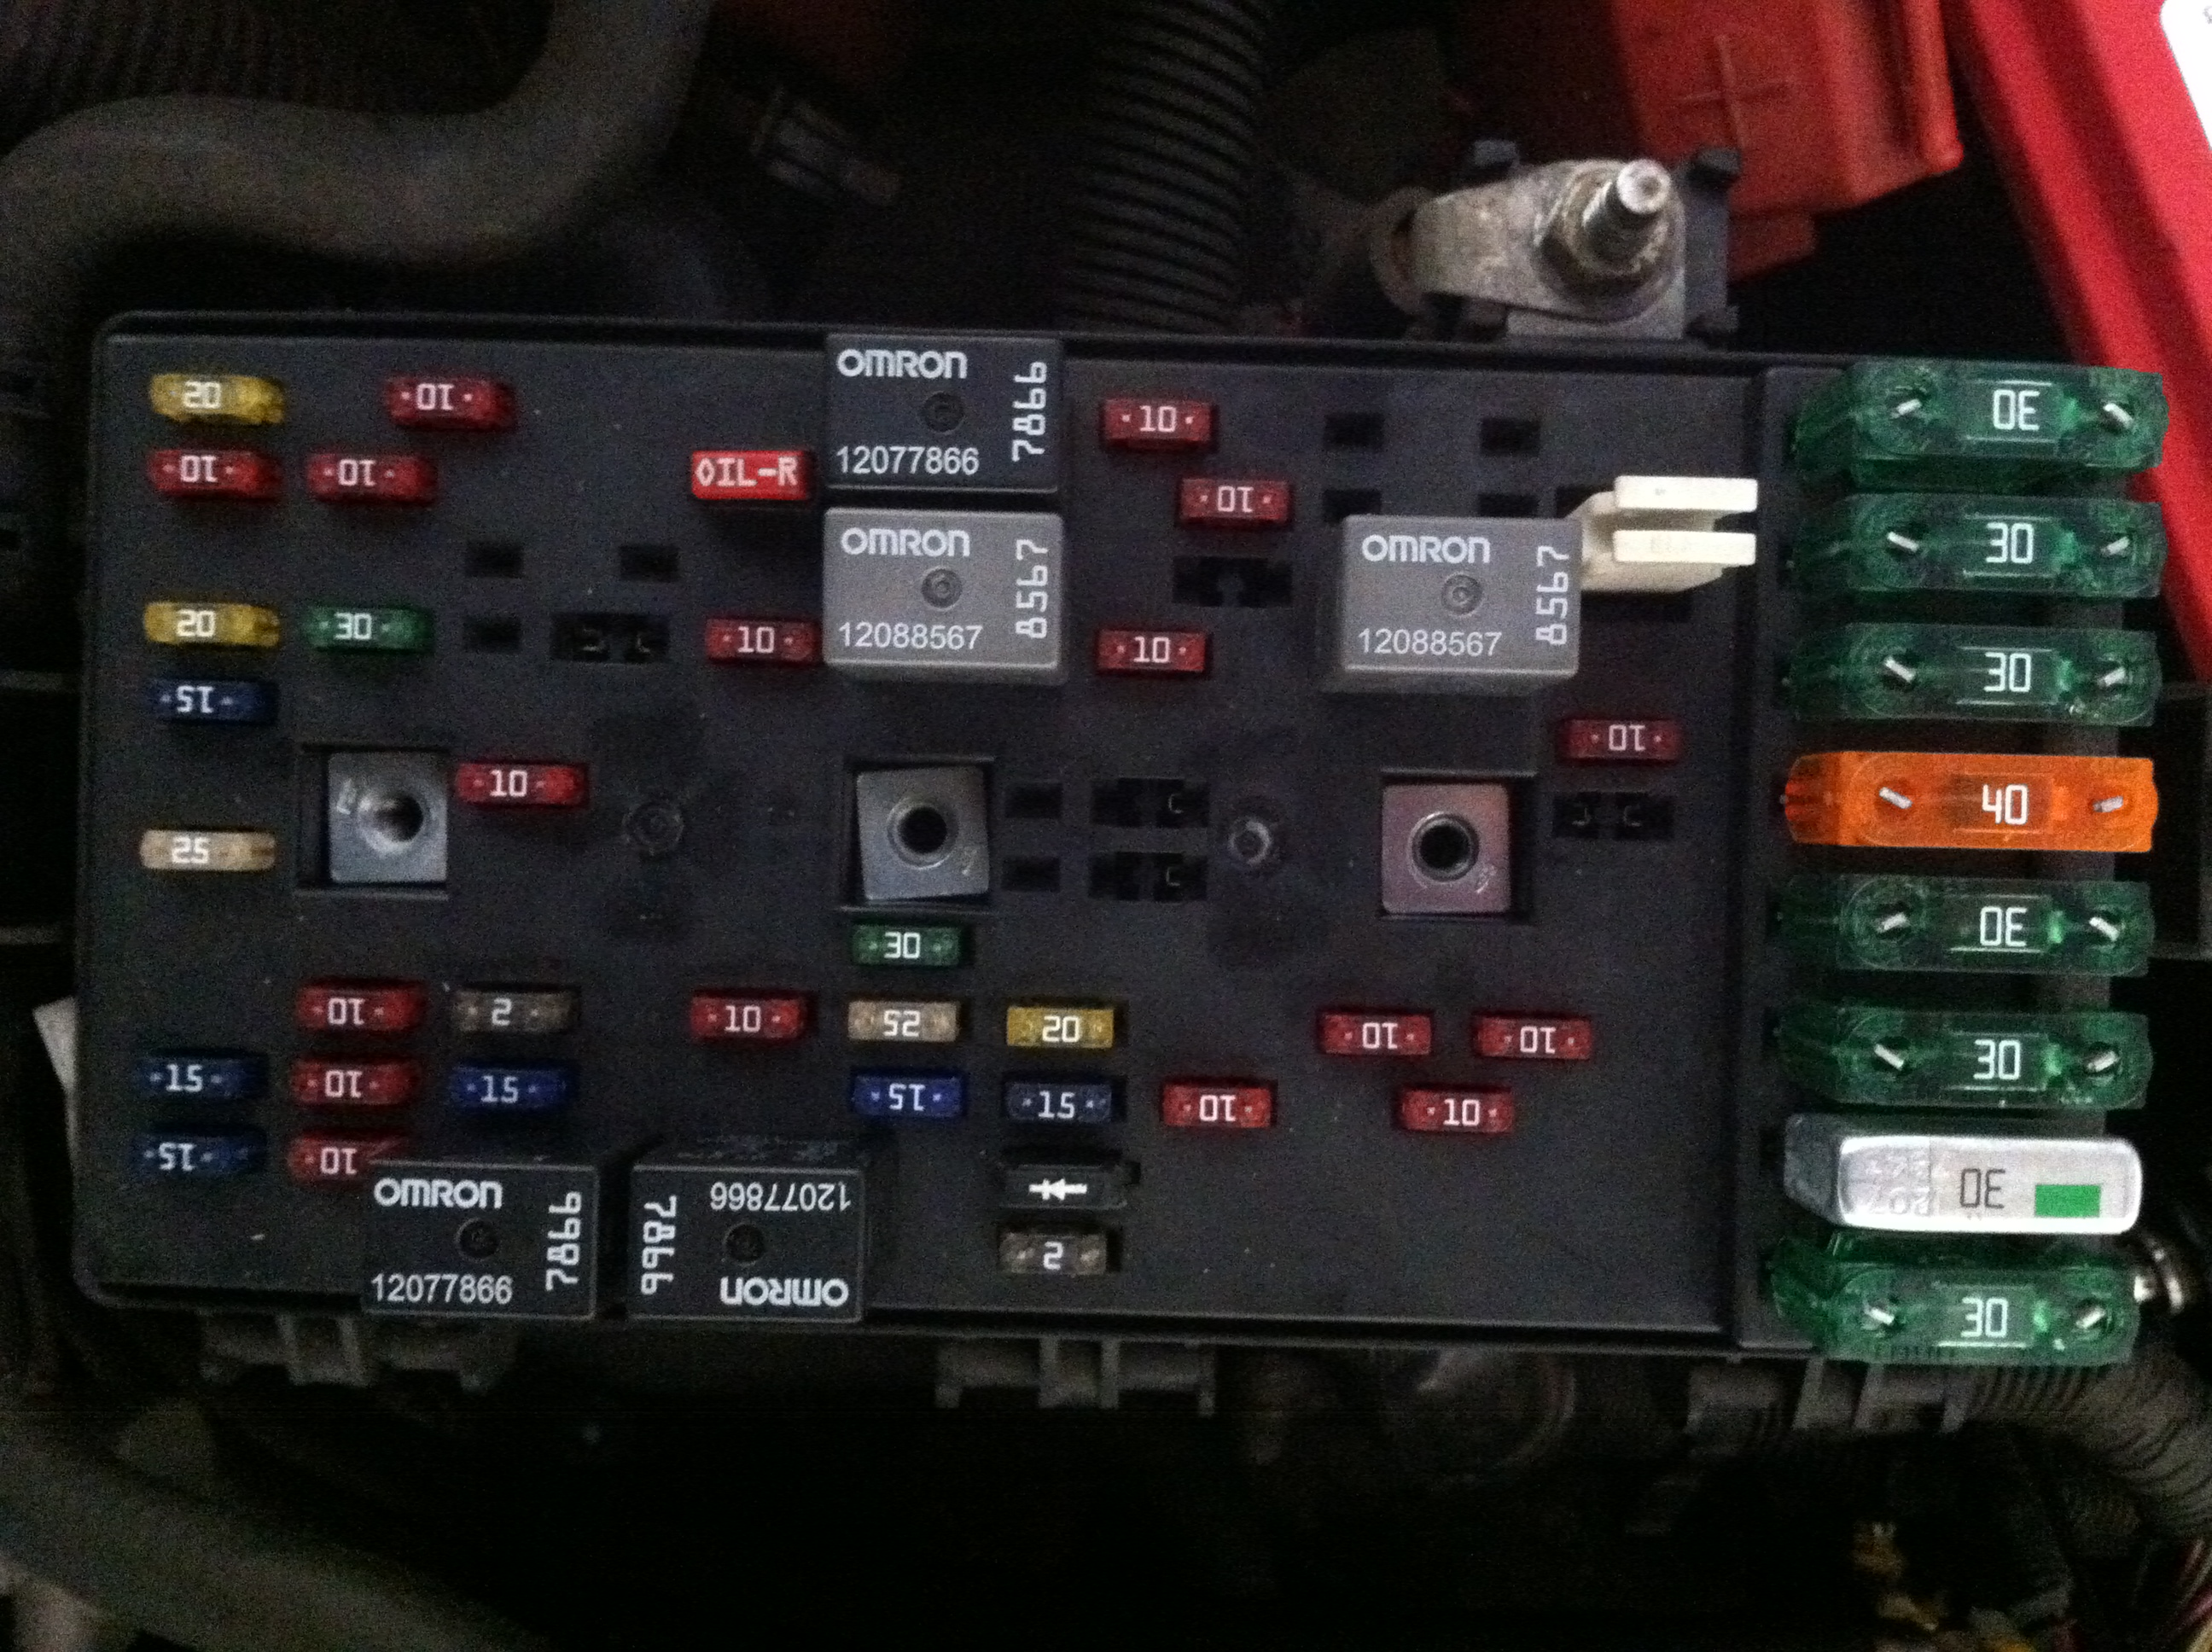 2006 Saturn Ion Fuse Box Location 33 Wiring Diagram Images 2004 2 2012 01 29 211916 Photo We Have A L200 Replaced Engine Then Alternator Went Bad